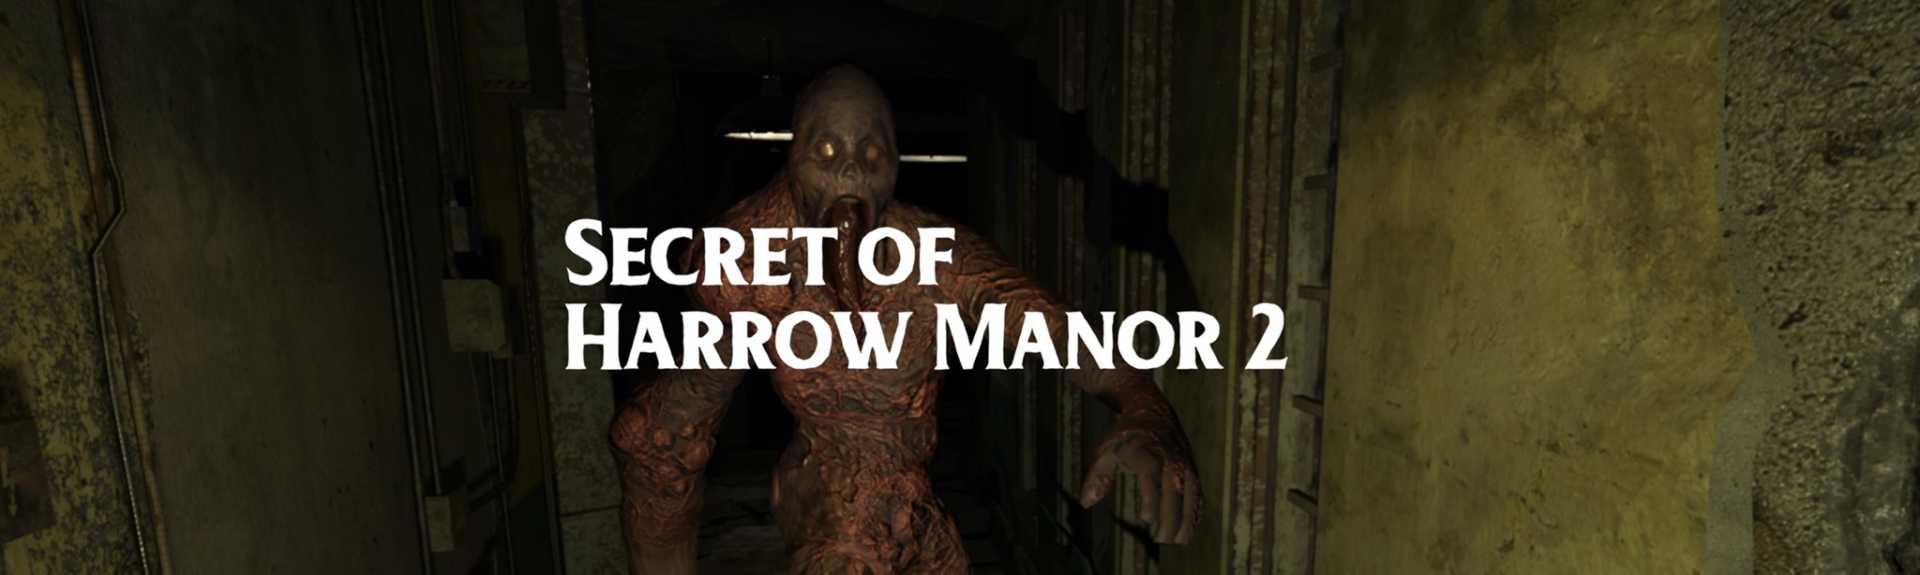 Secret of Harrow Manor 2